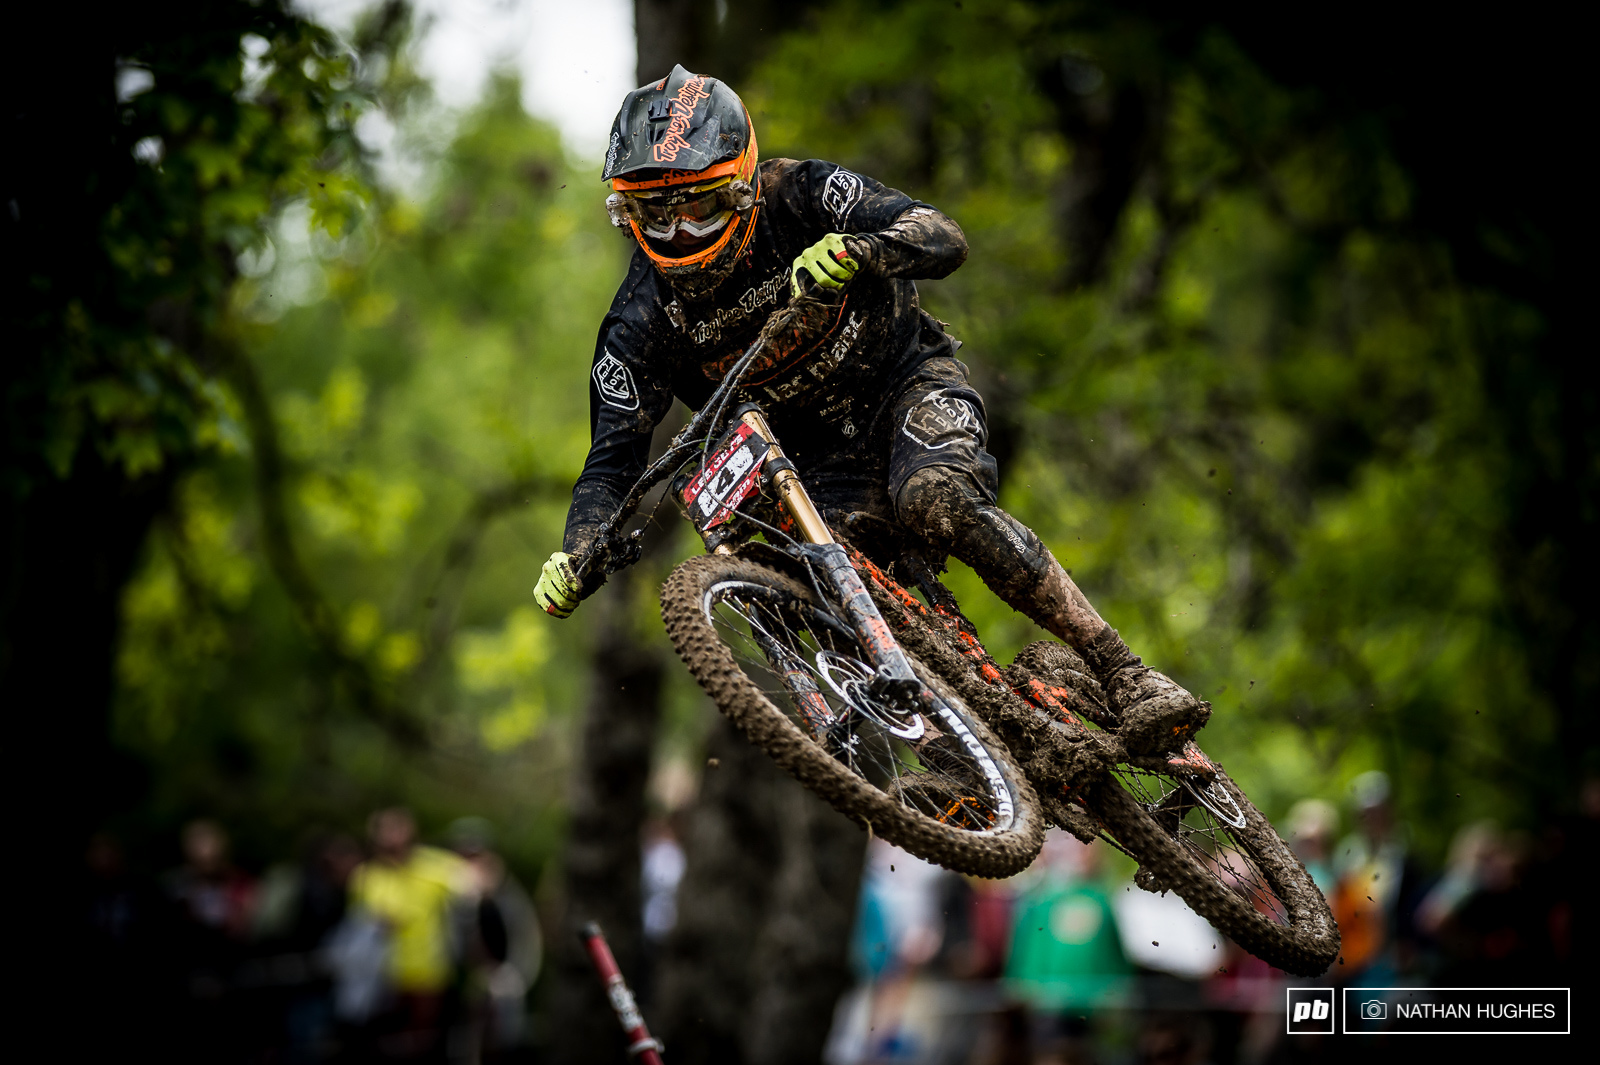 Thomas Estaque had the weekend of his days riding to fifth place.